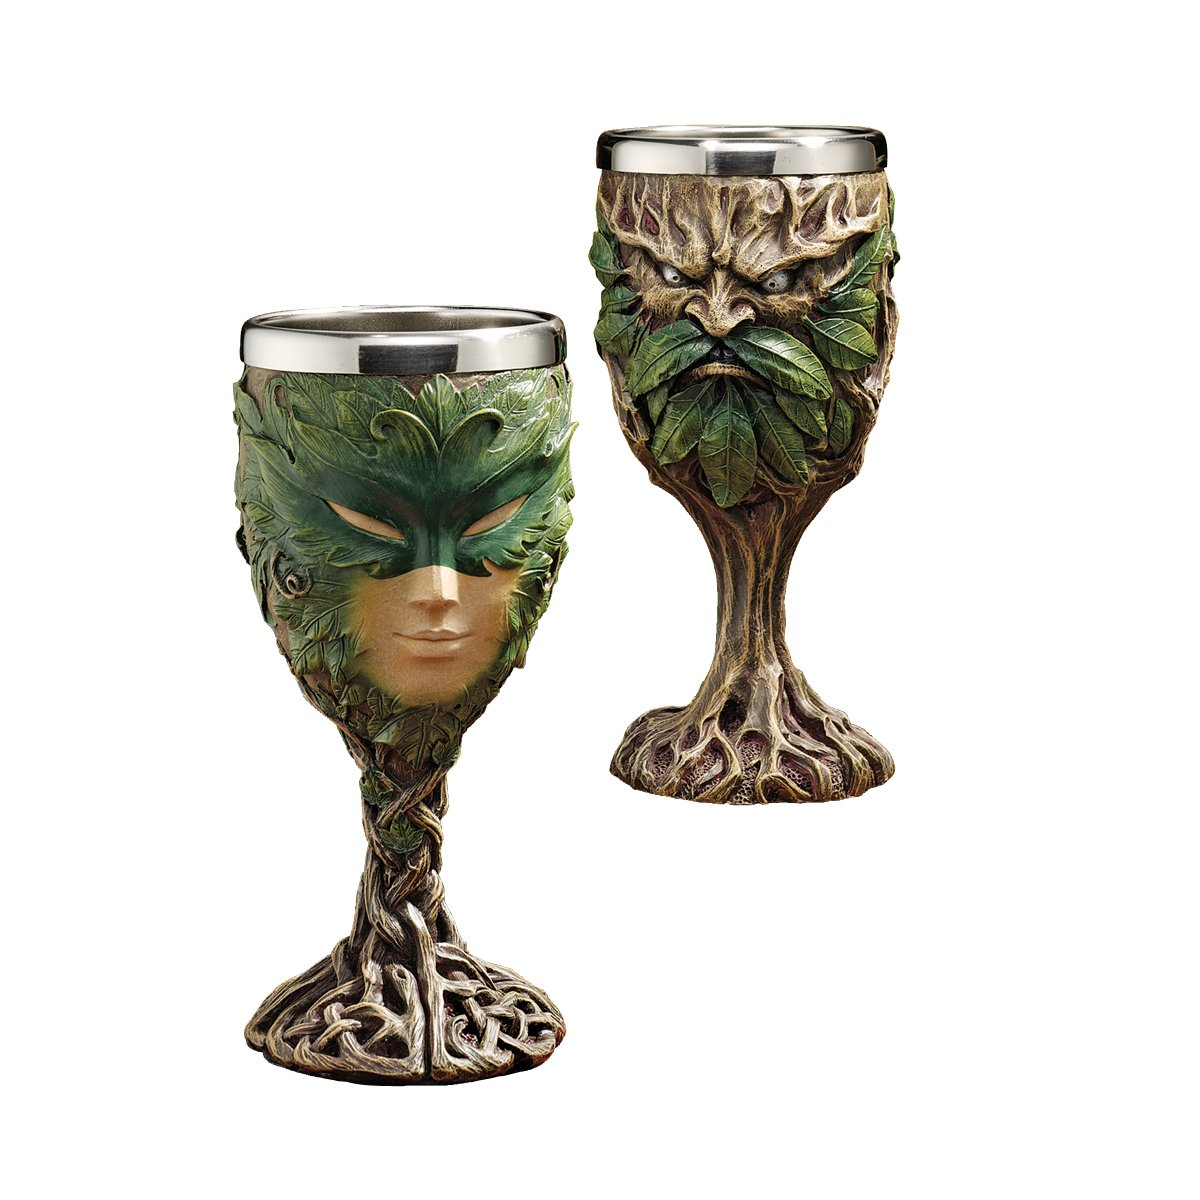 Design Toscano Forest Spirits Greenman Goblet Collection: Grendal The Green & Lady of The Leaf